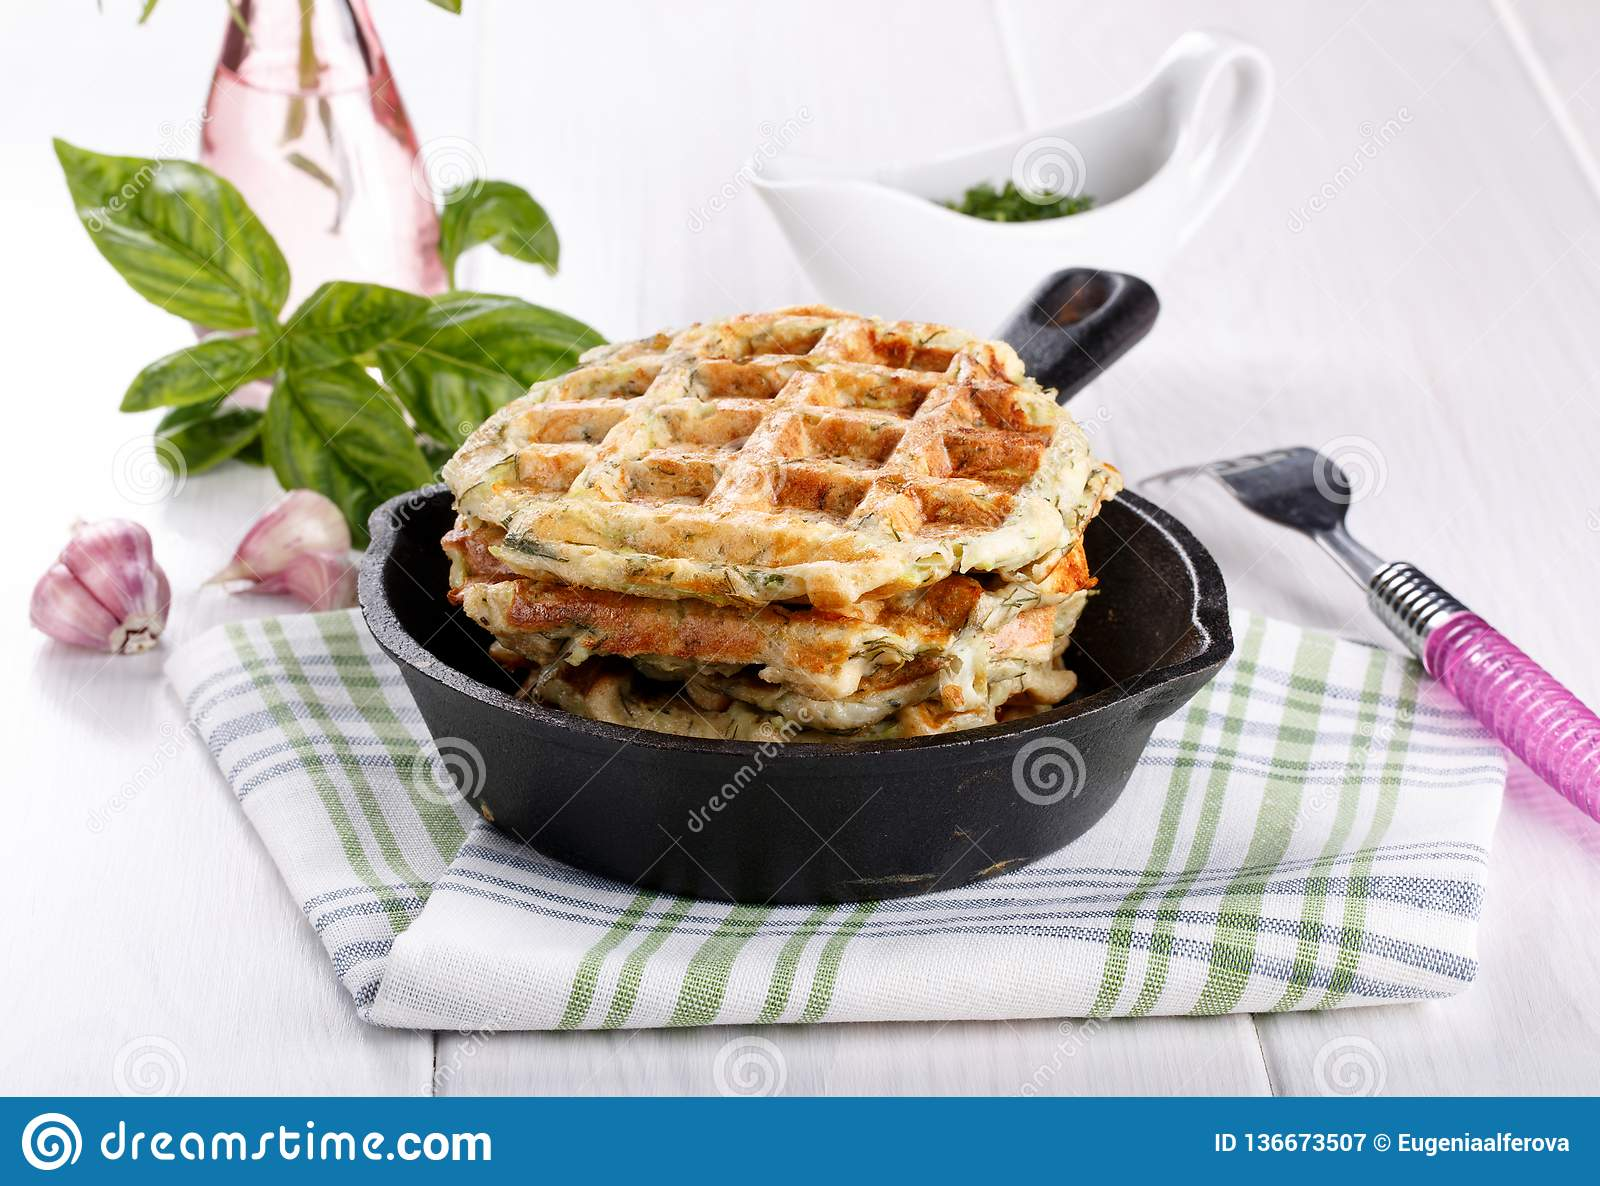 Savory vegetable waffles with cheese and herbs